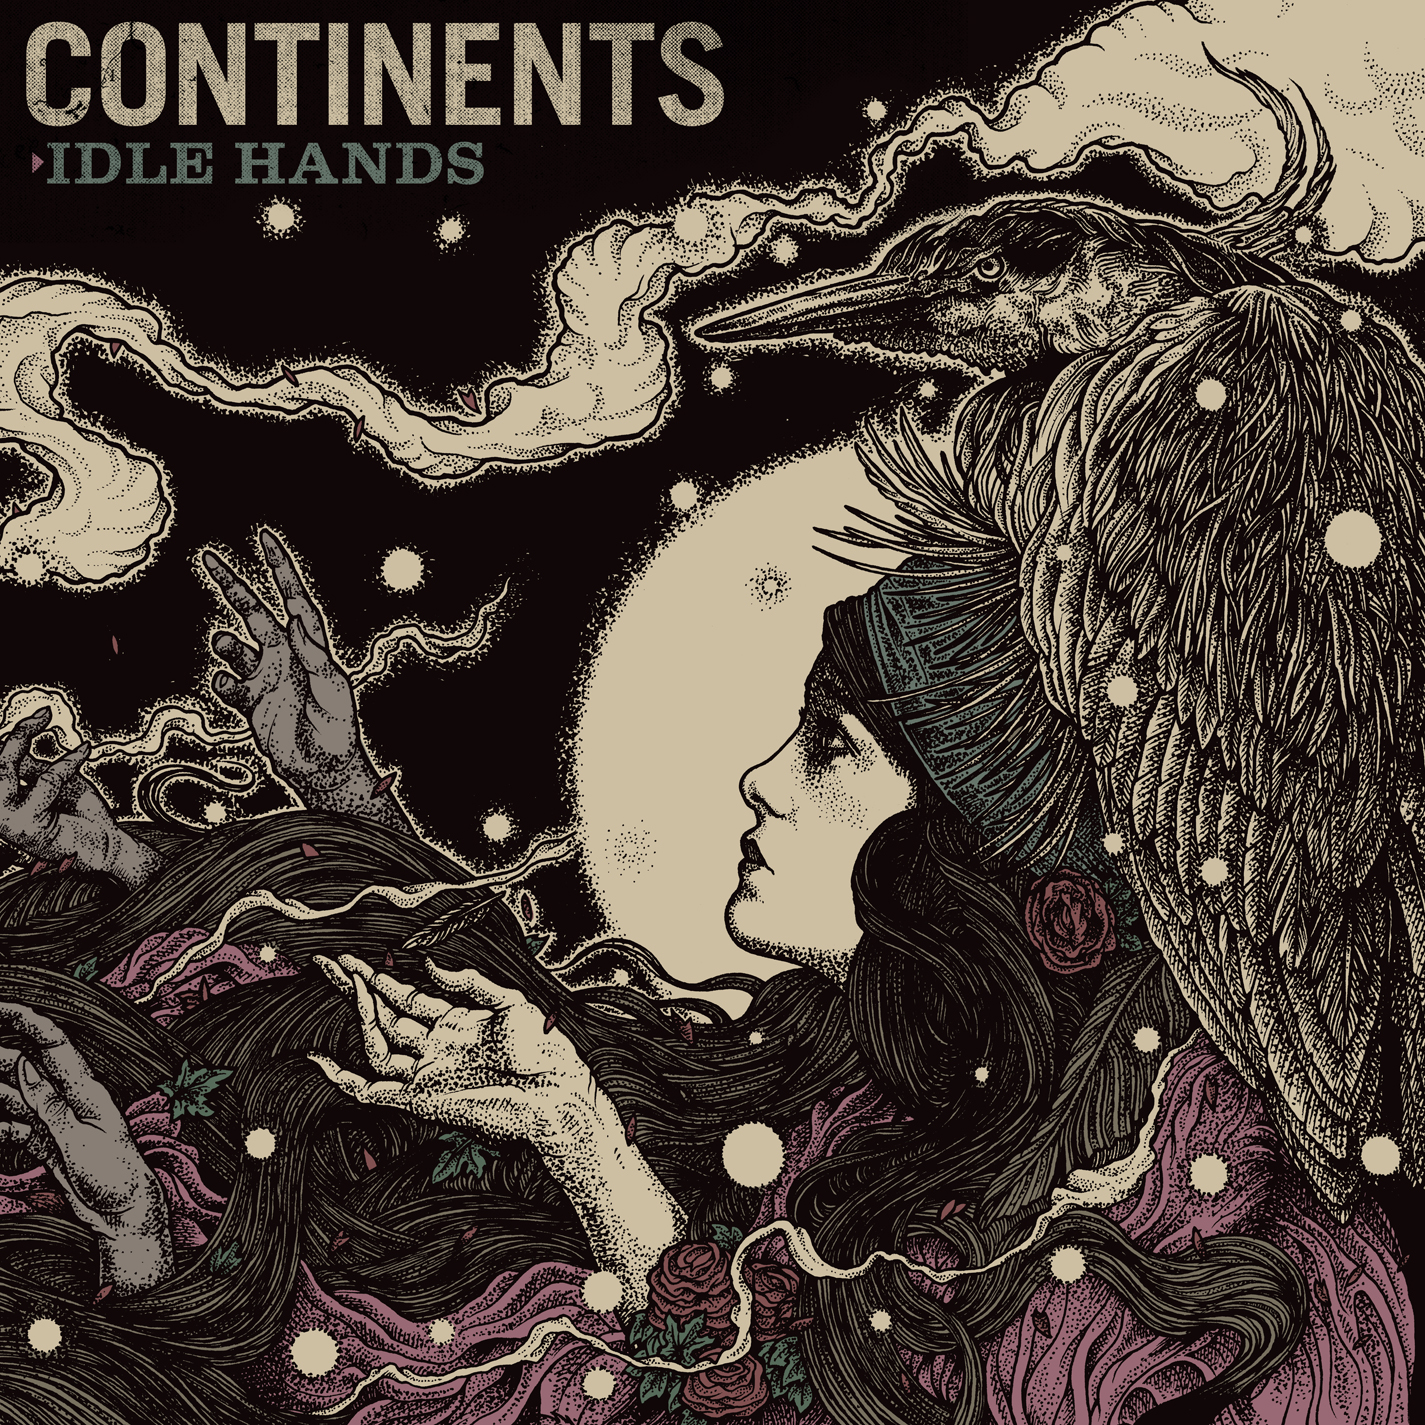 Image result for continents idle hands